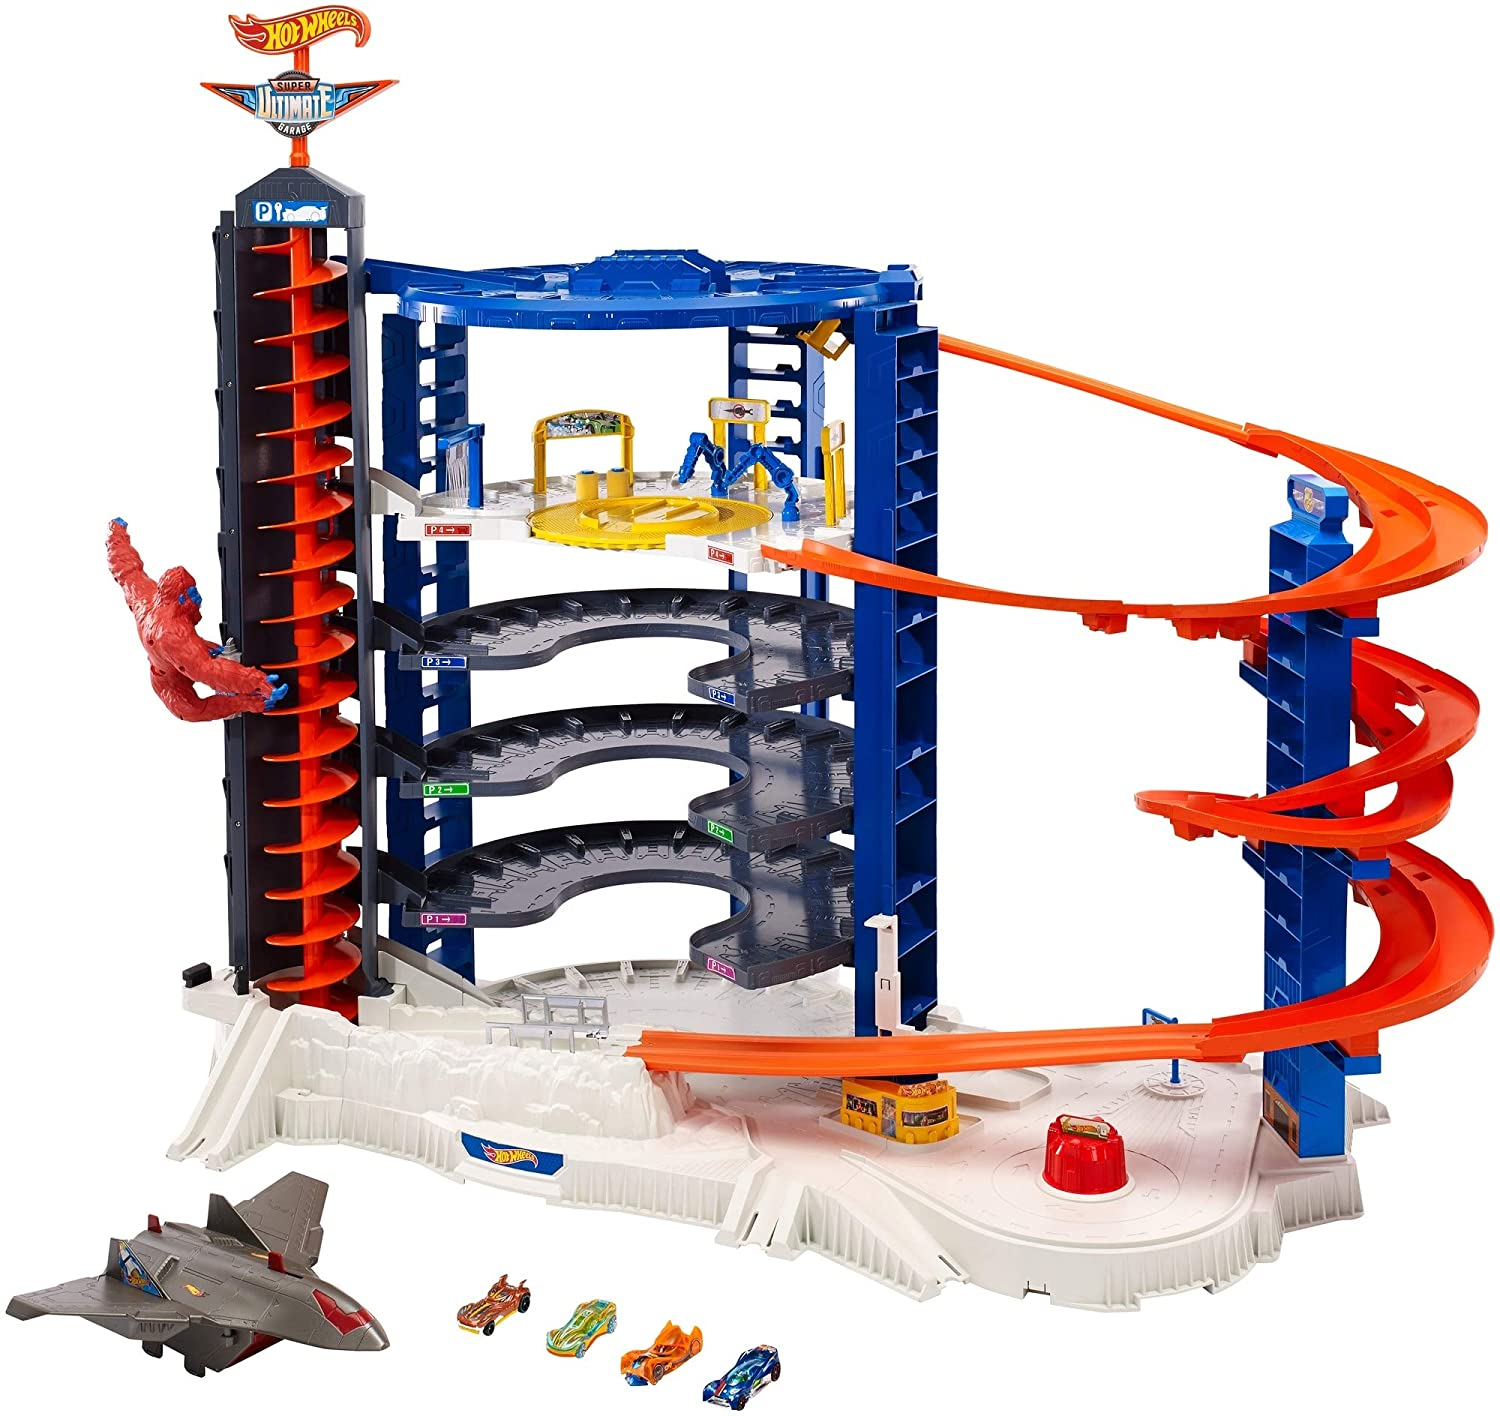 Top 10 Best Hot Wheels Race Track Sets (2020 Review & Buying Guide) 8